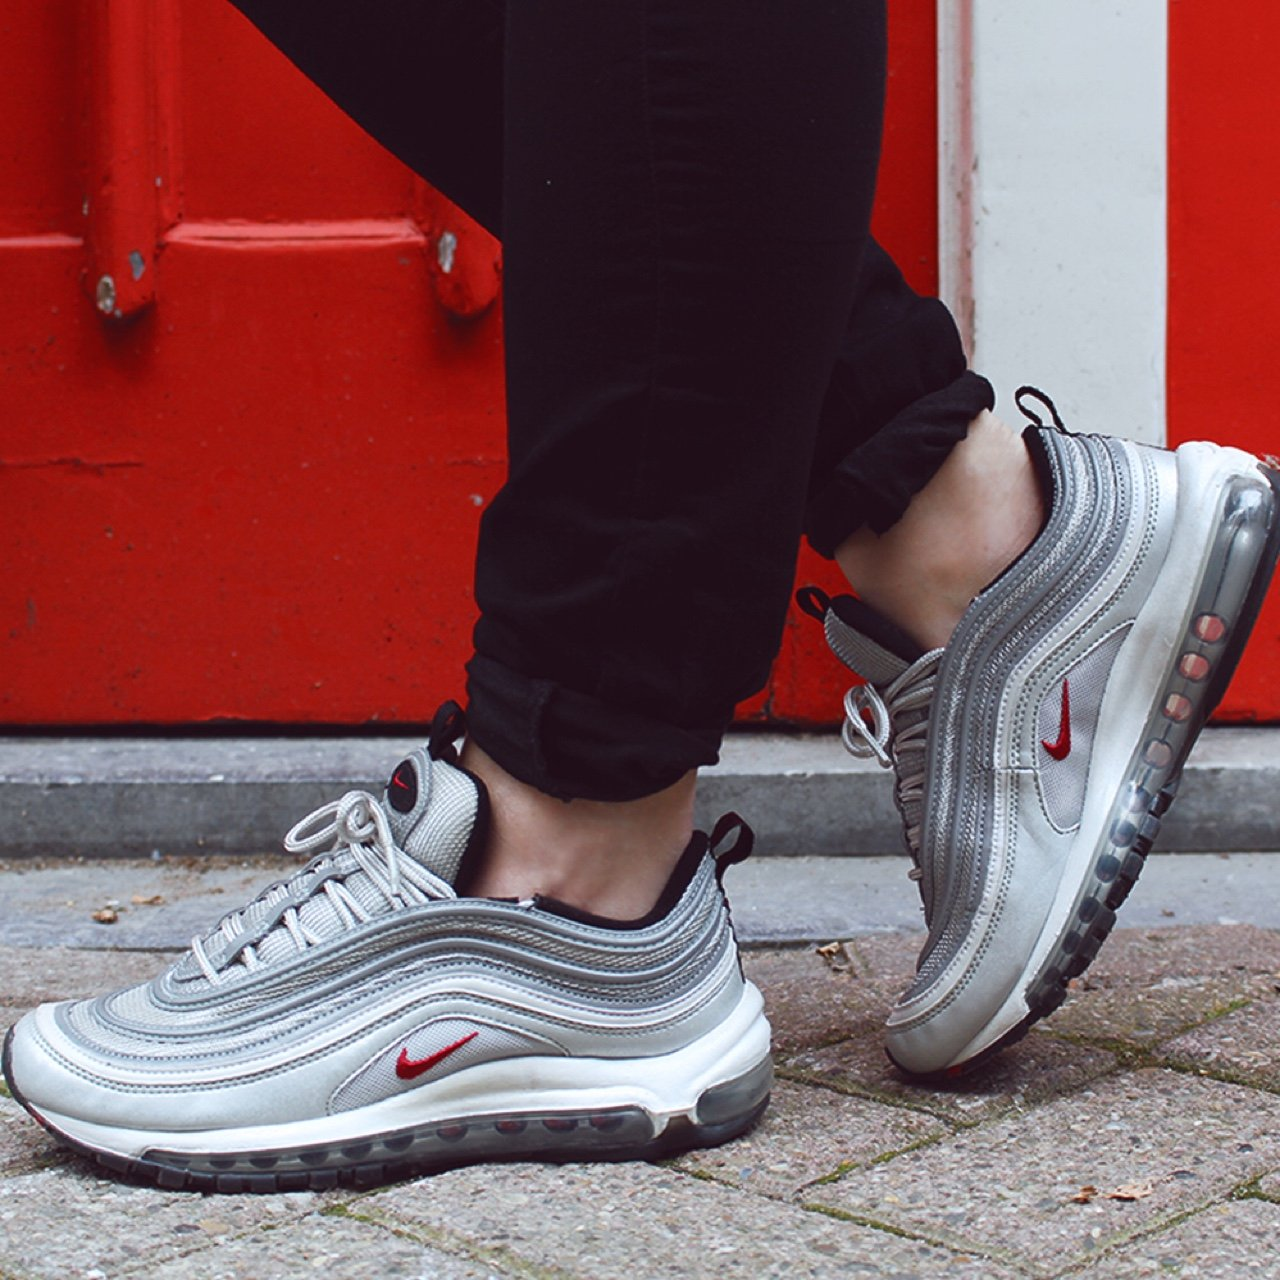 1858d3b64316 air max 97 silver bullet    size 8.5 will fit a 8 or 9 also - Depop